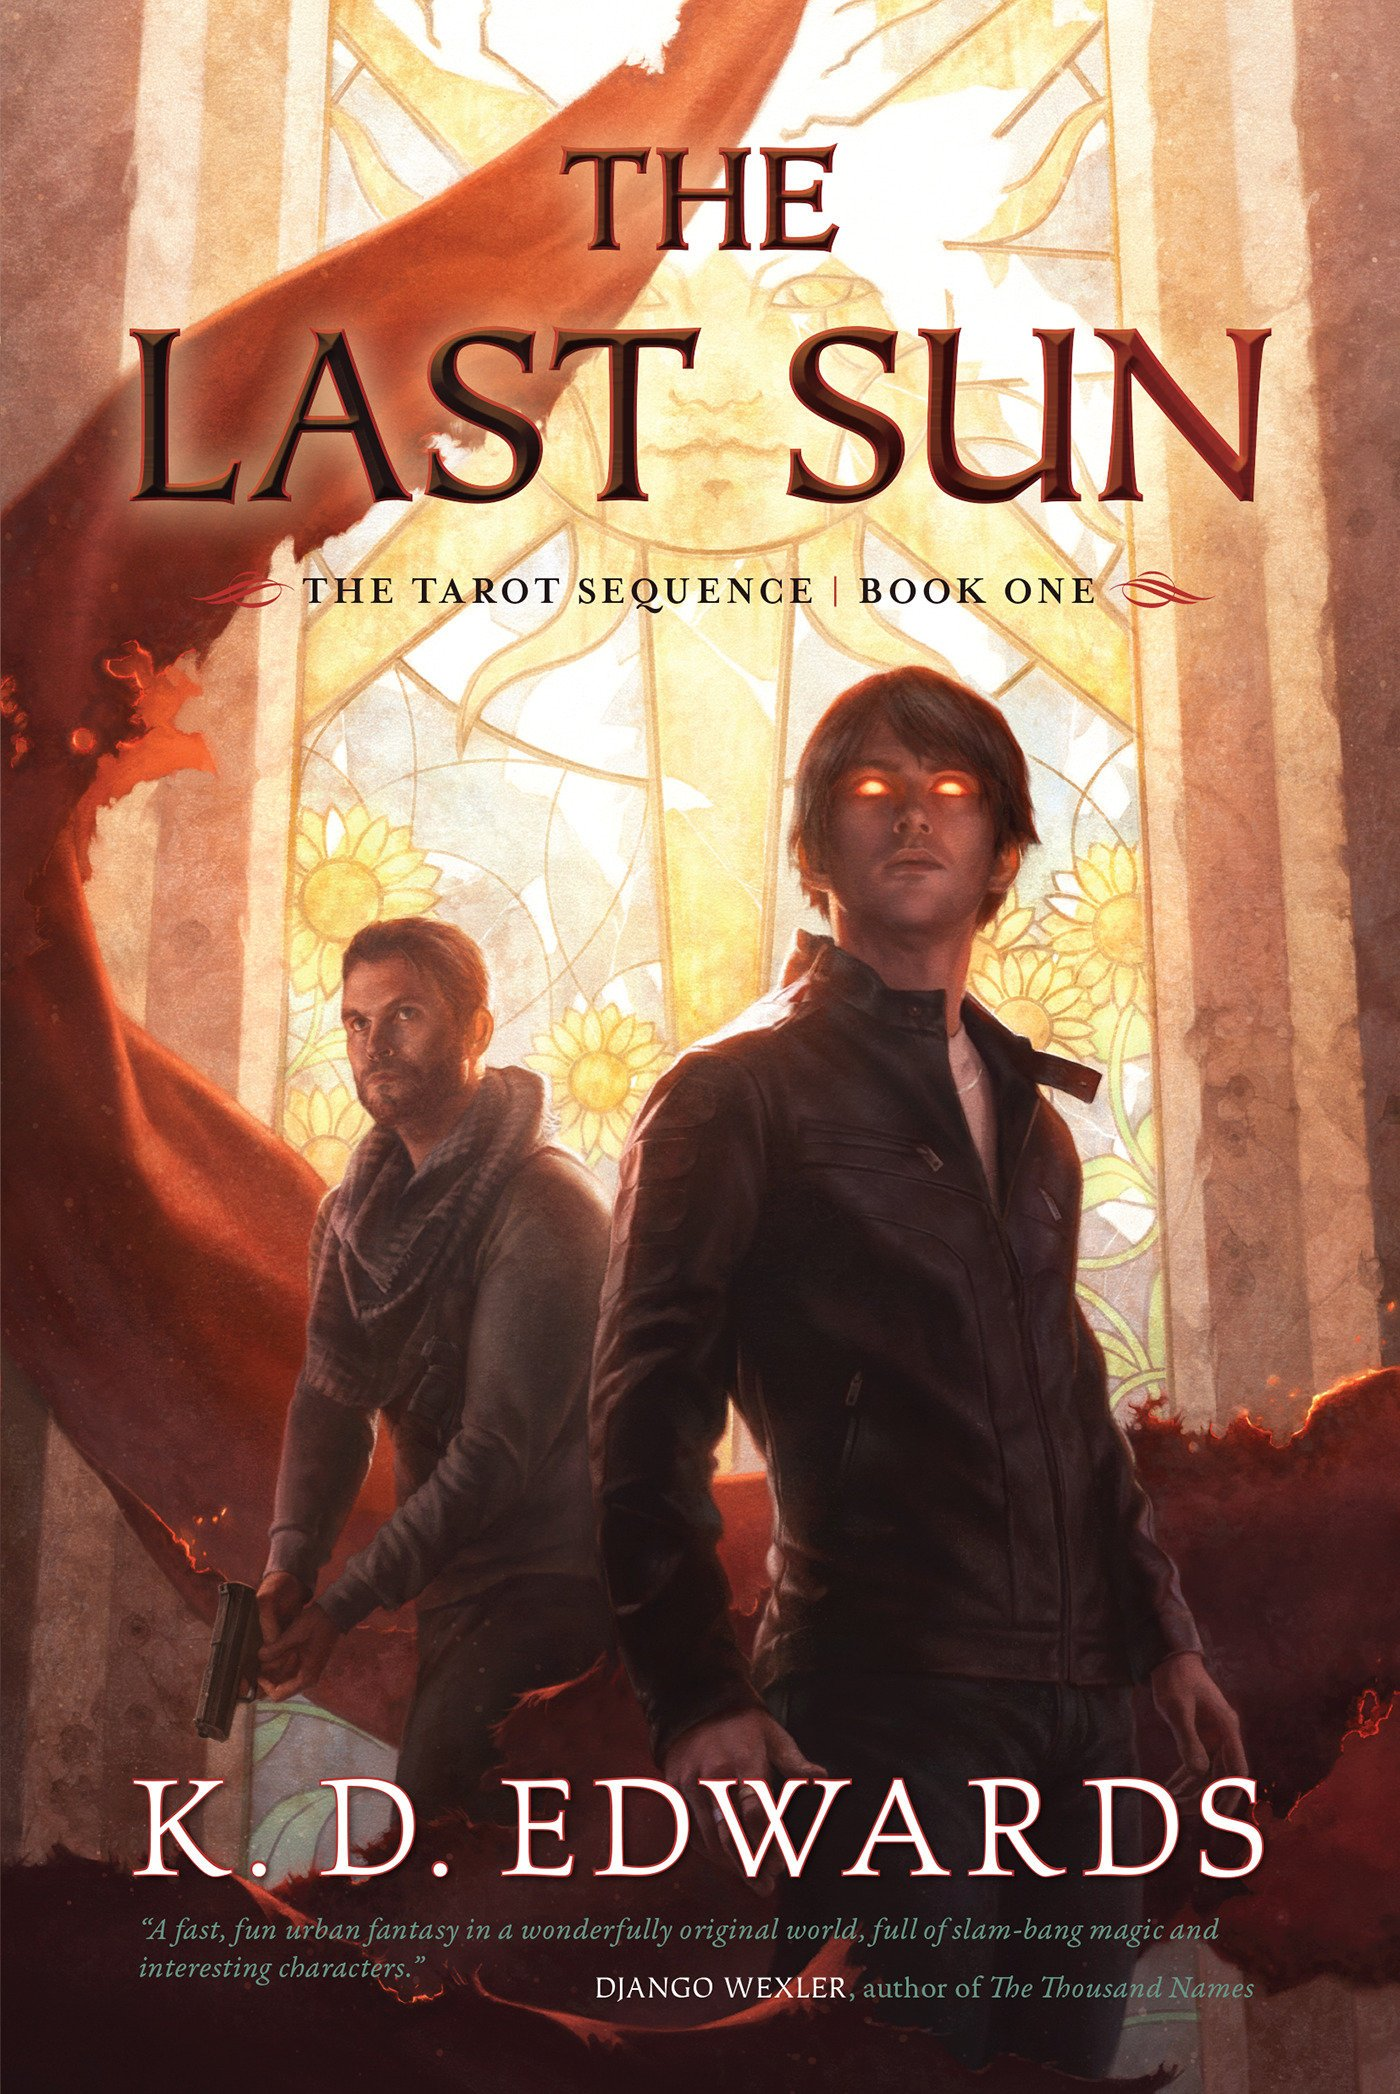 K.D. Edwards: Five Things I Learned Writing The Last Sun